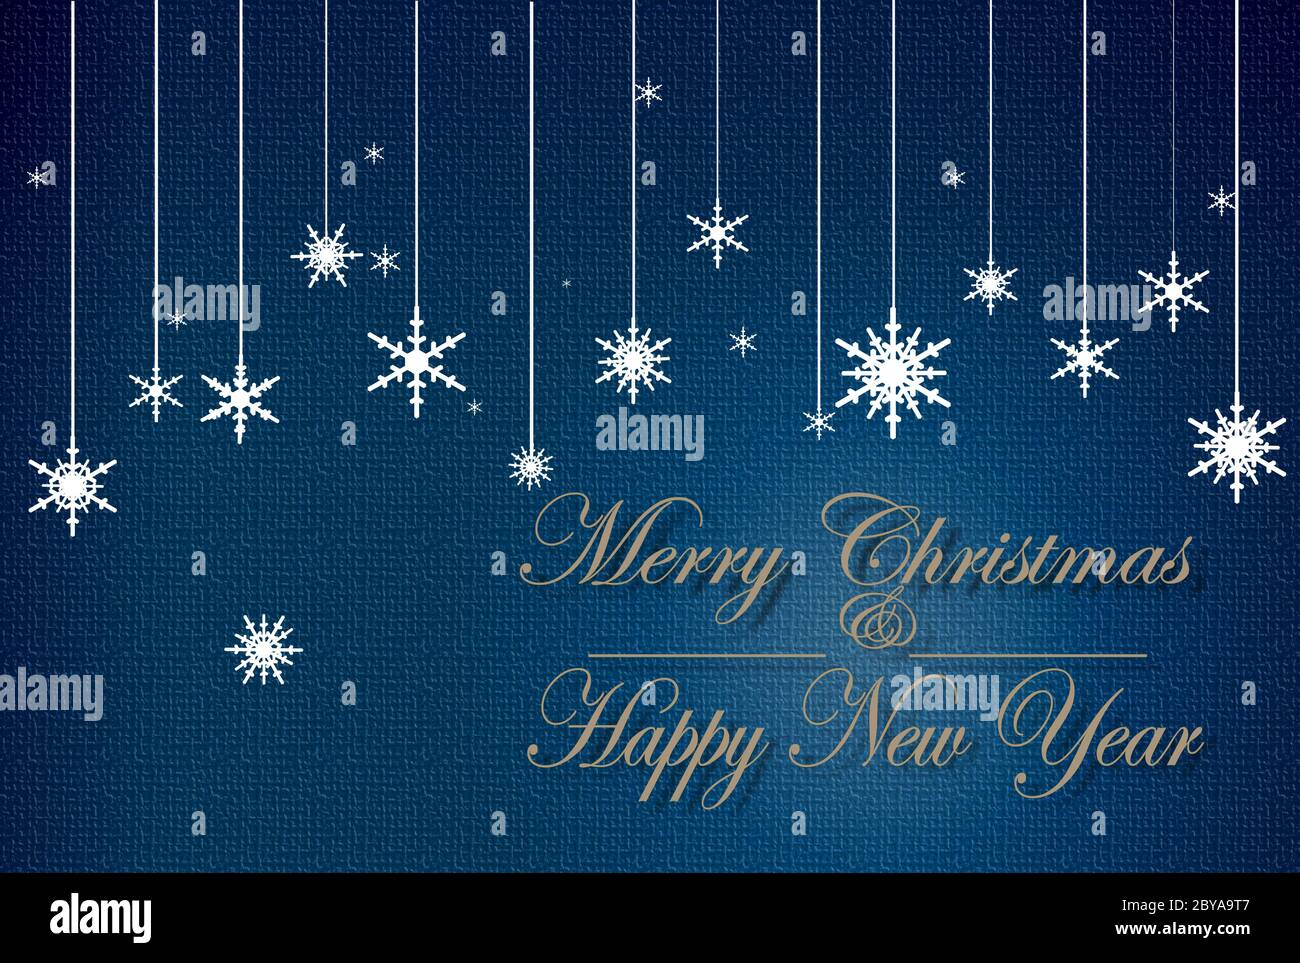 merry christmas and happy new year text in copper colour and icons of snowflakes in trendy blue background christmas 2021 new year elegant greeting card frame banner stock photo alamy alamy